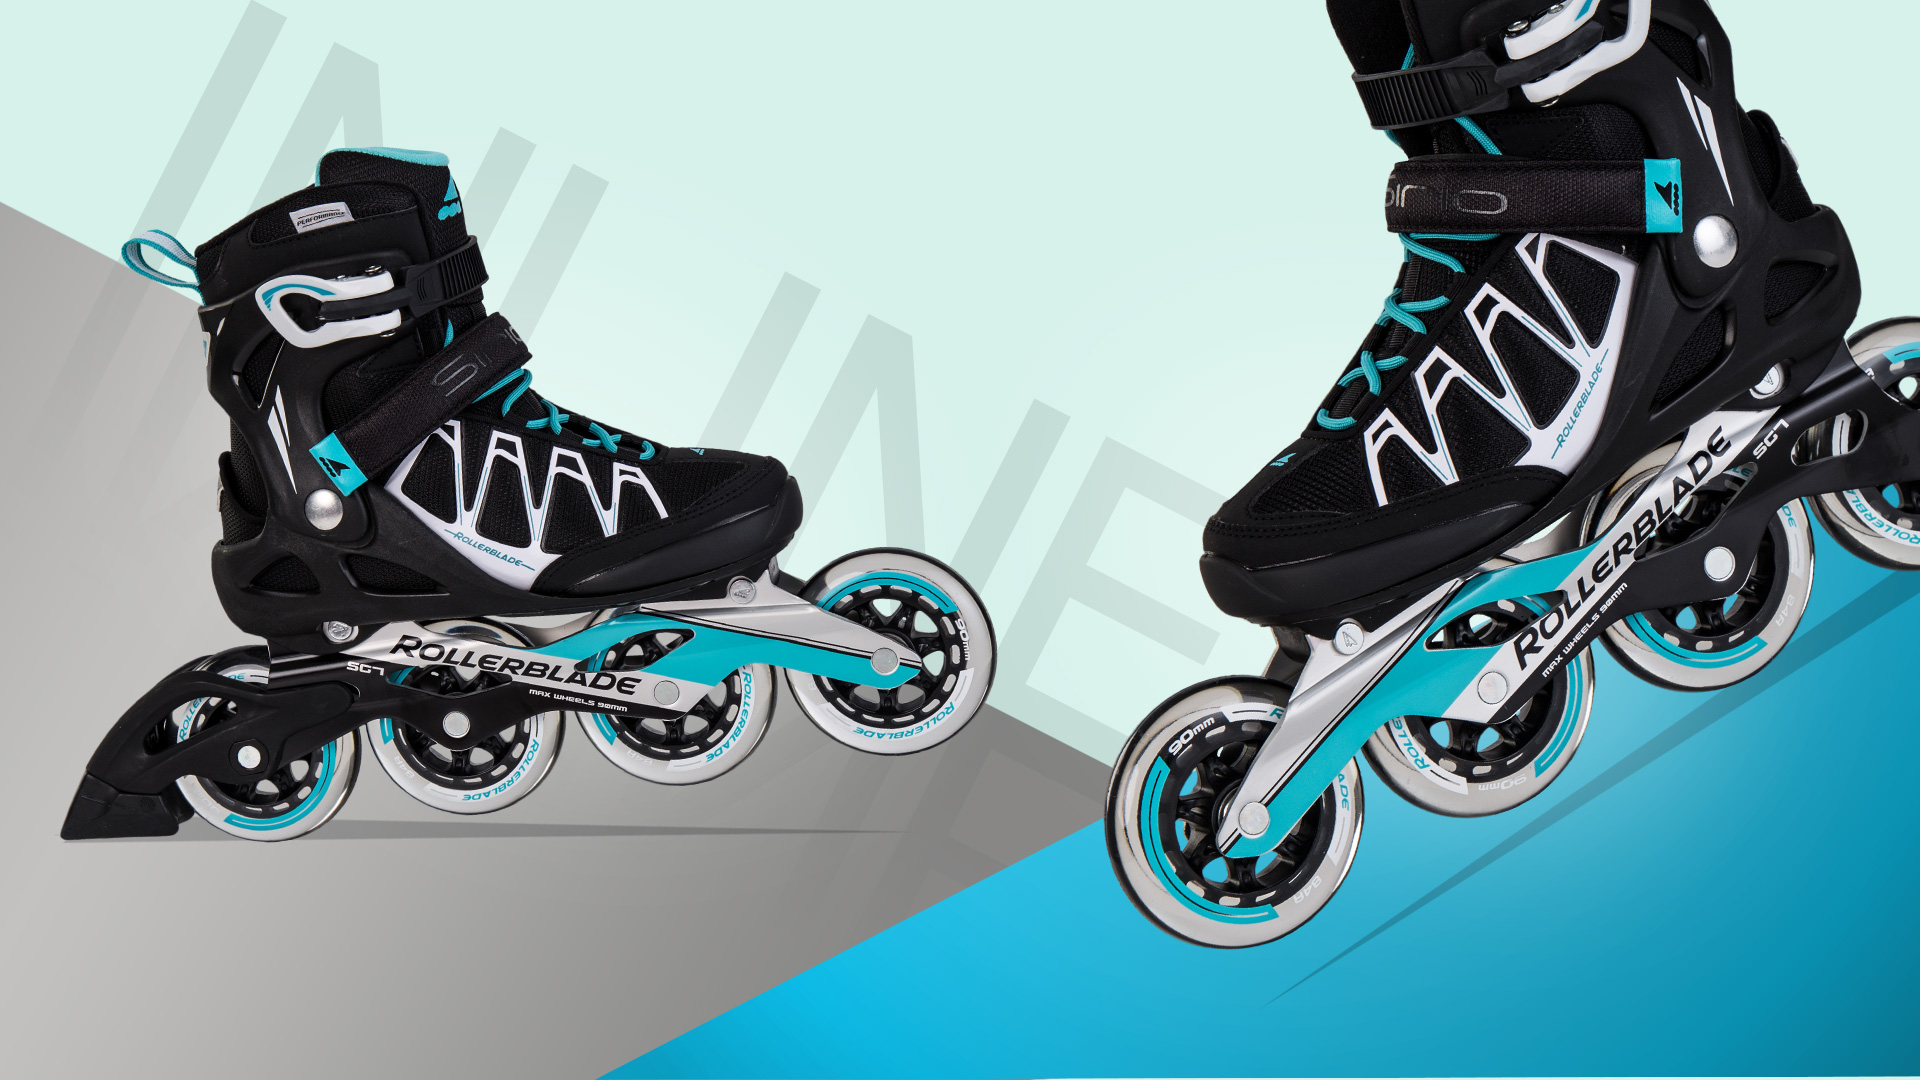 Rollerblade in-line